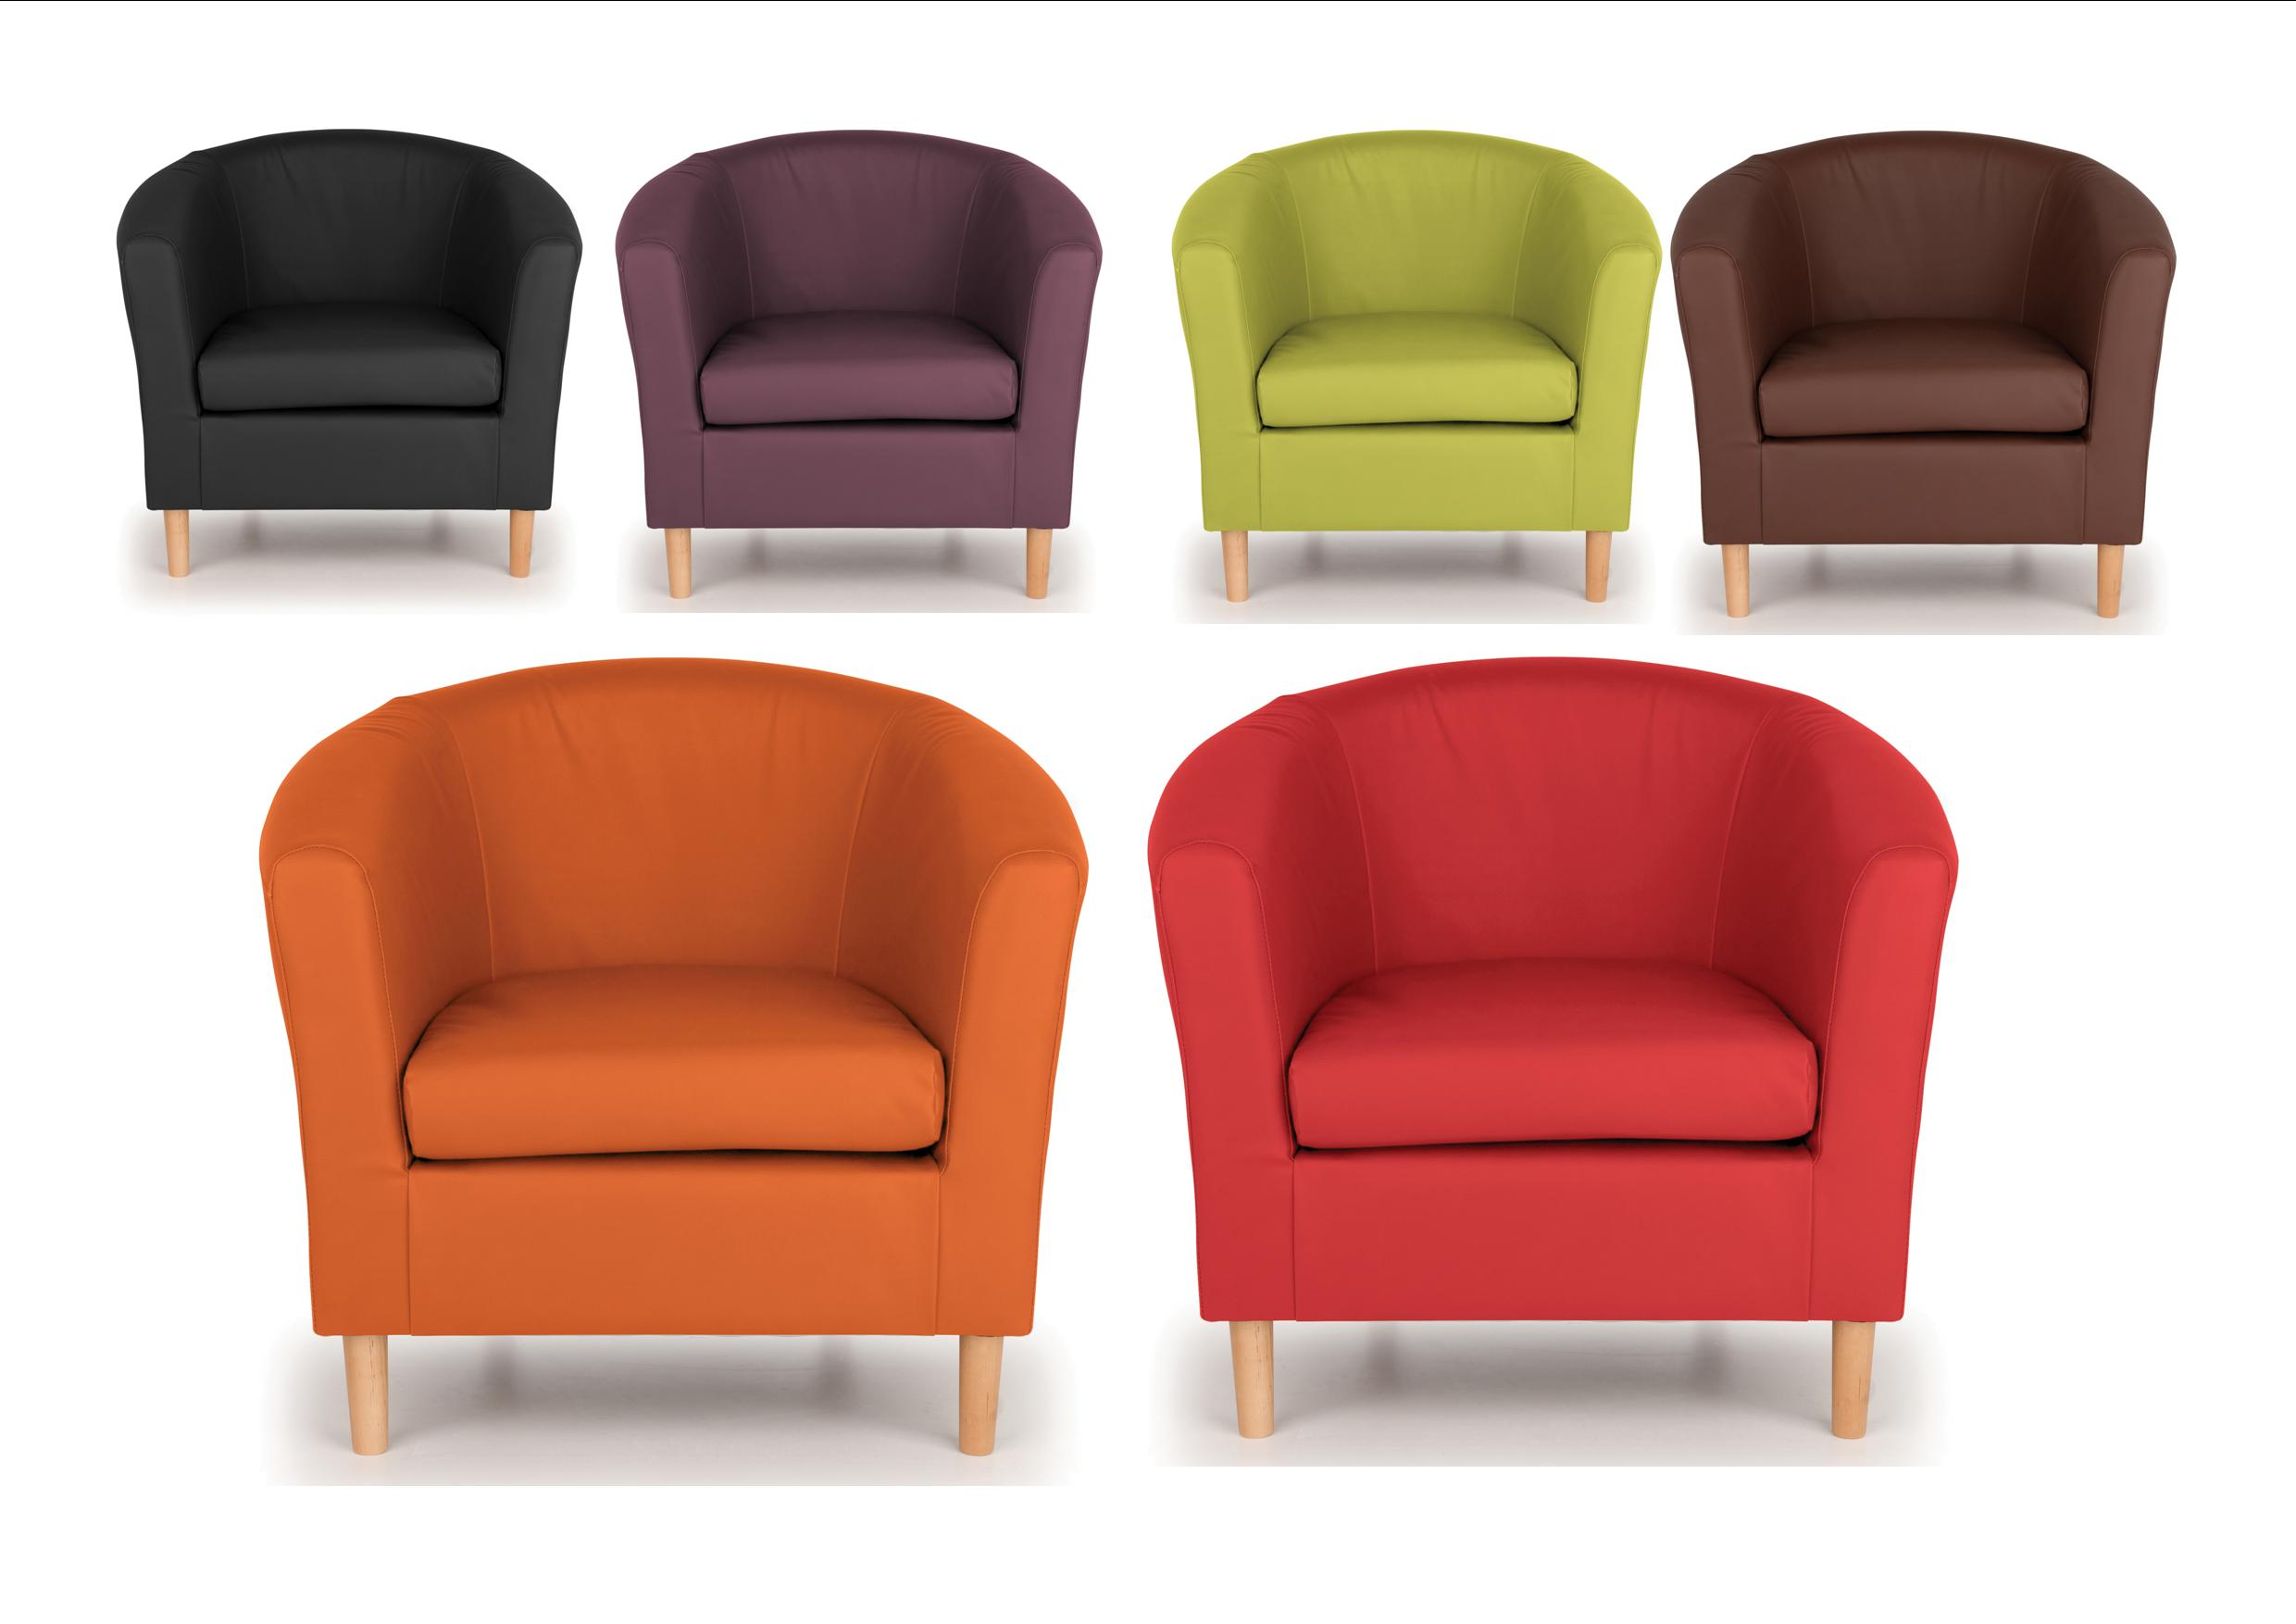 Superior Nicole Tub Chairs Armchair   Brown, Black Lime, Orange, Plum, Red   Faux  Leather